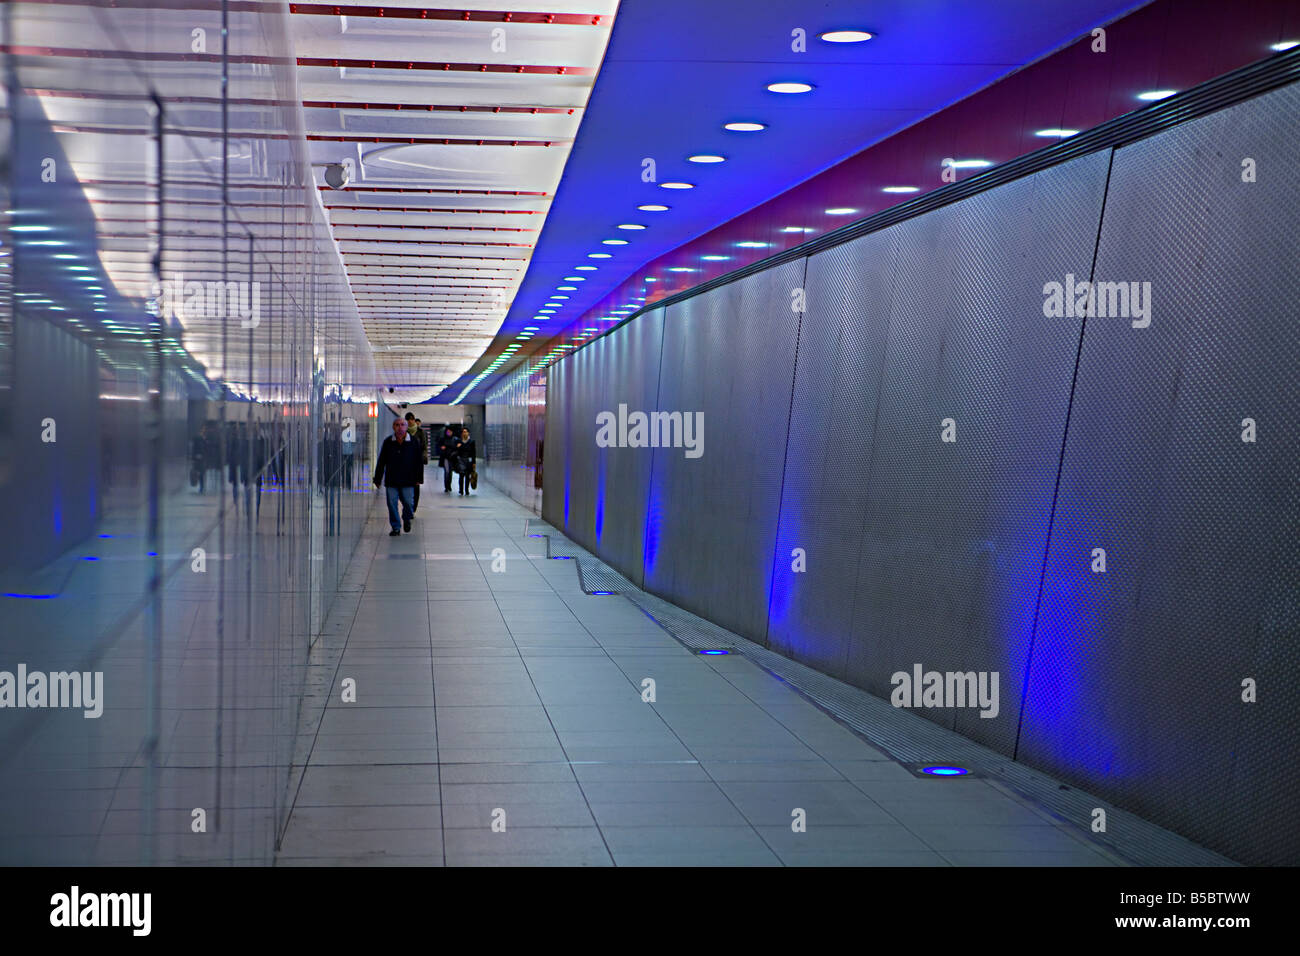 A well lit passage / walkway in the Berlin underground walk way U-Bahn S-Bahn Stock Photo